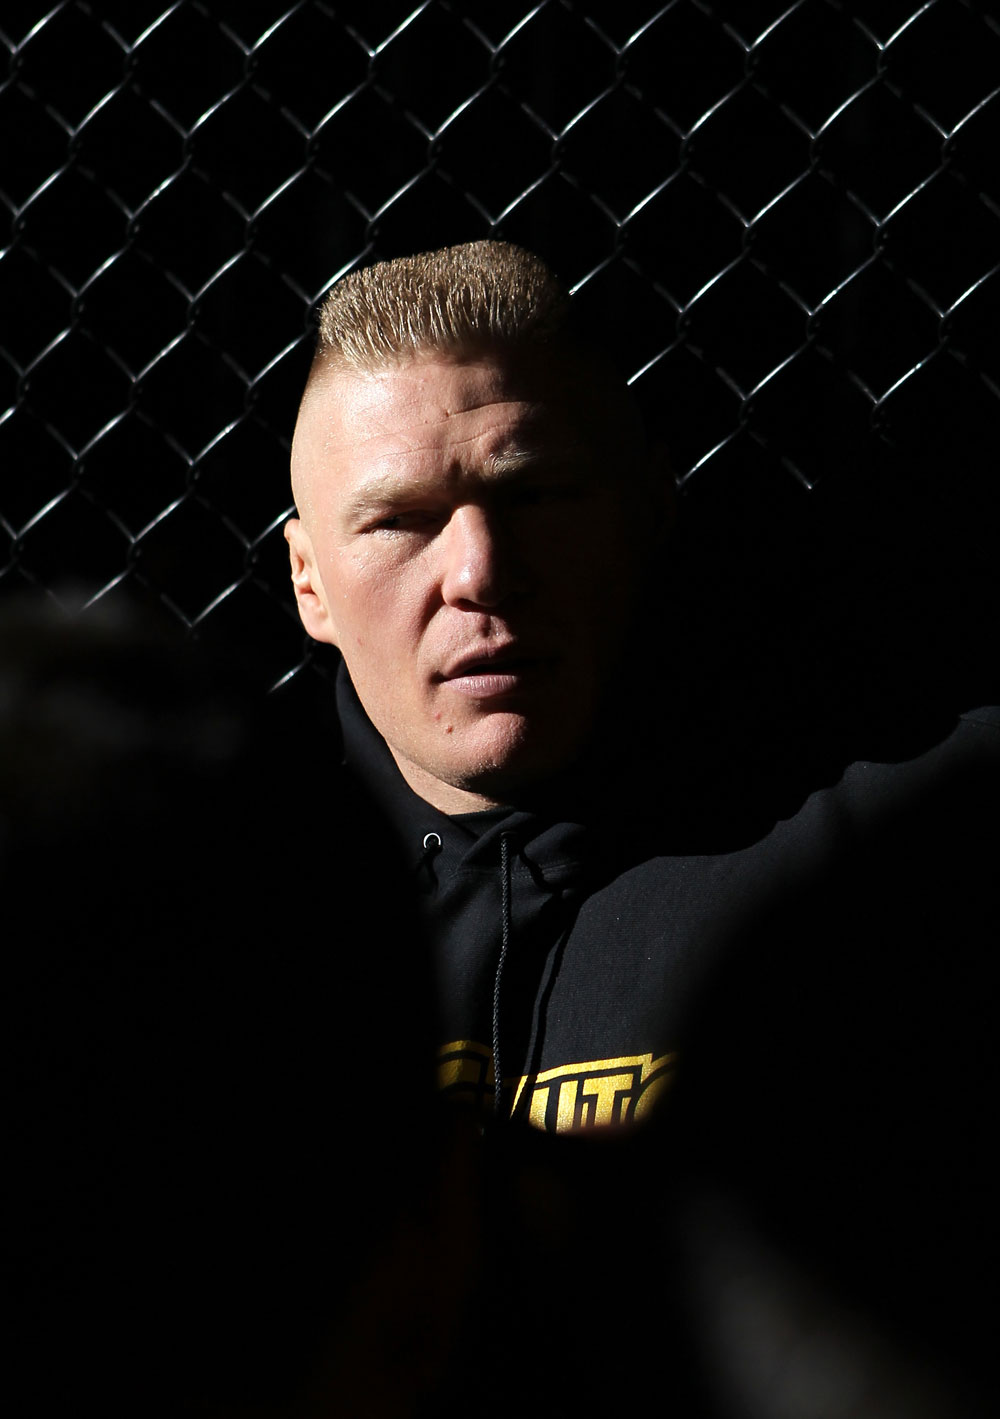 Former UFC heavyweight champion Brock Lesnar